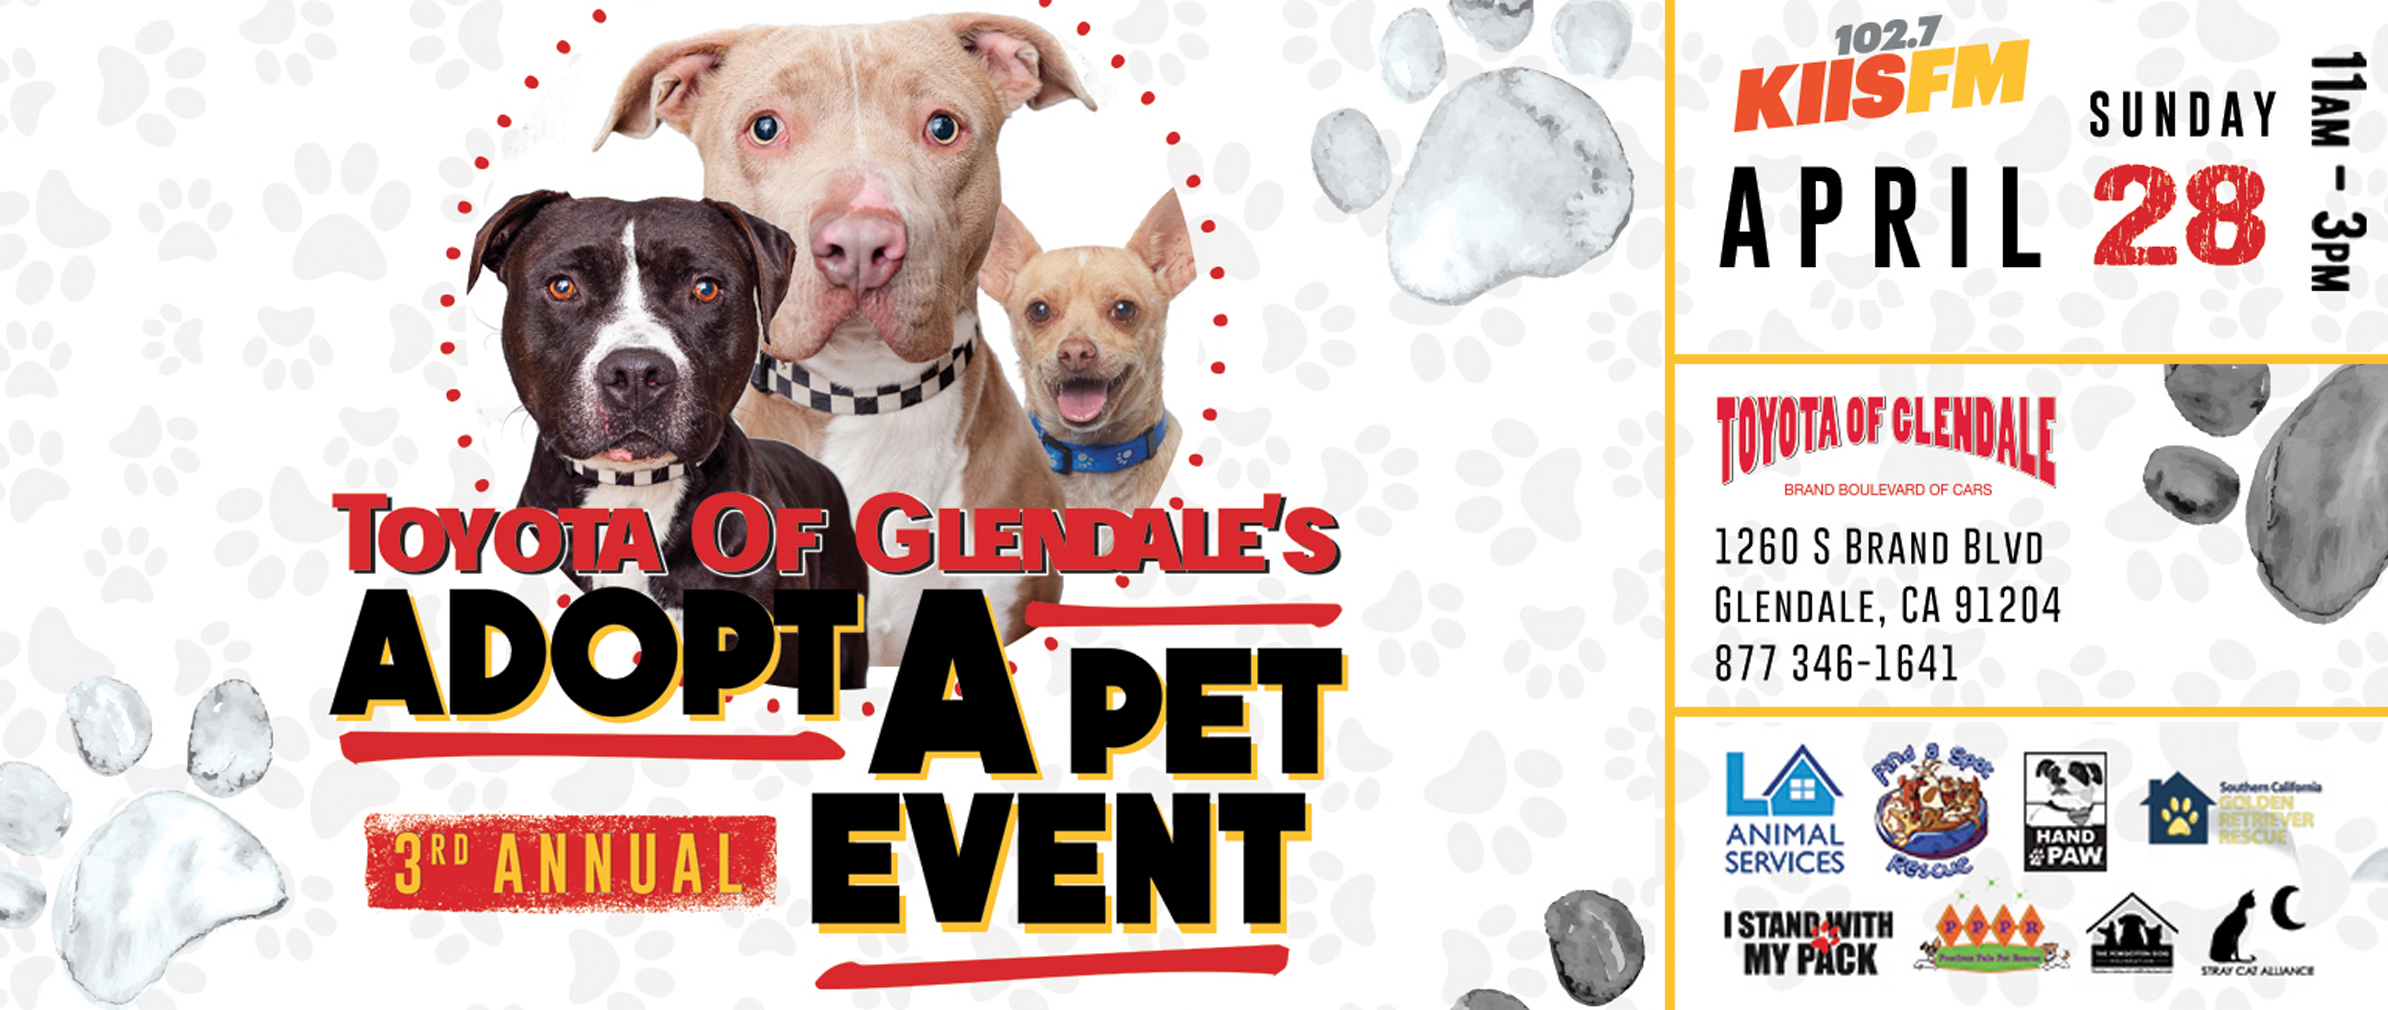 Toyota of Glendale's 3rd Annual Adopt a Pet Event